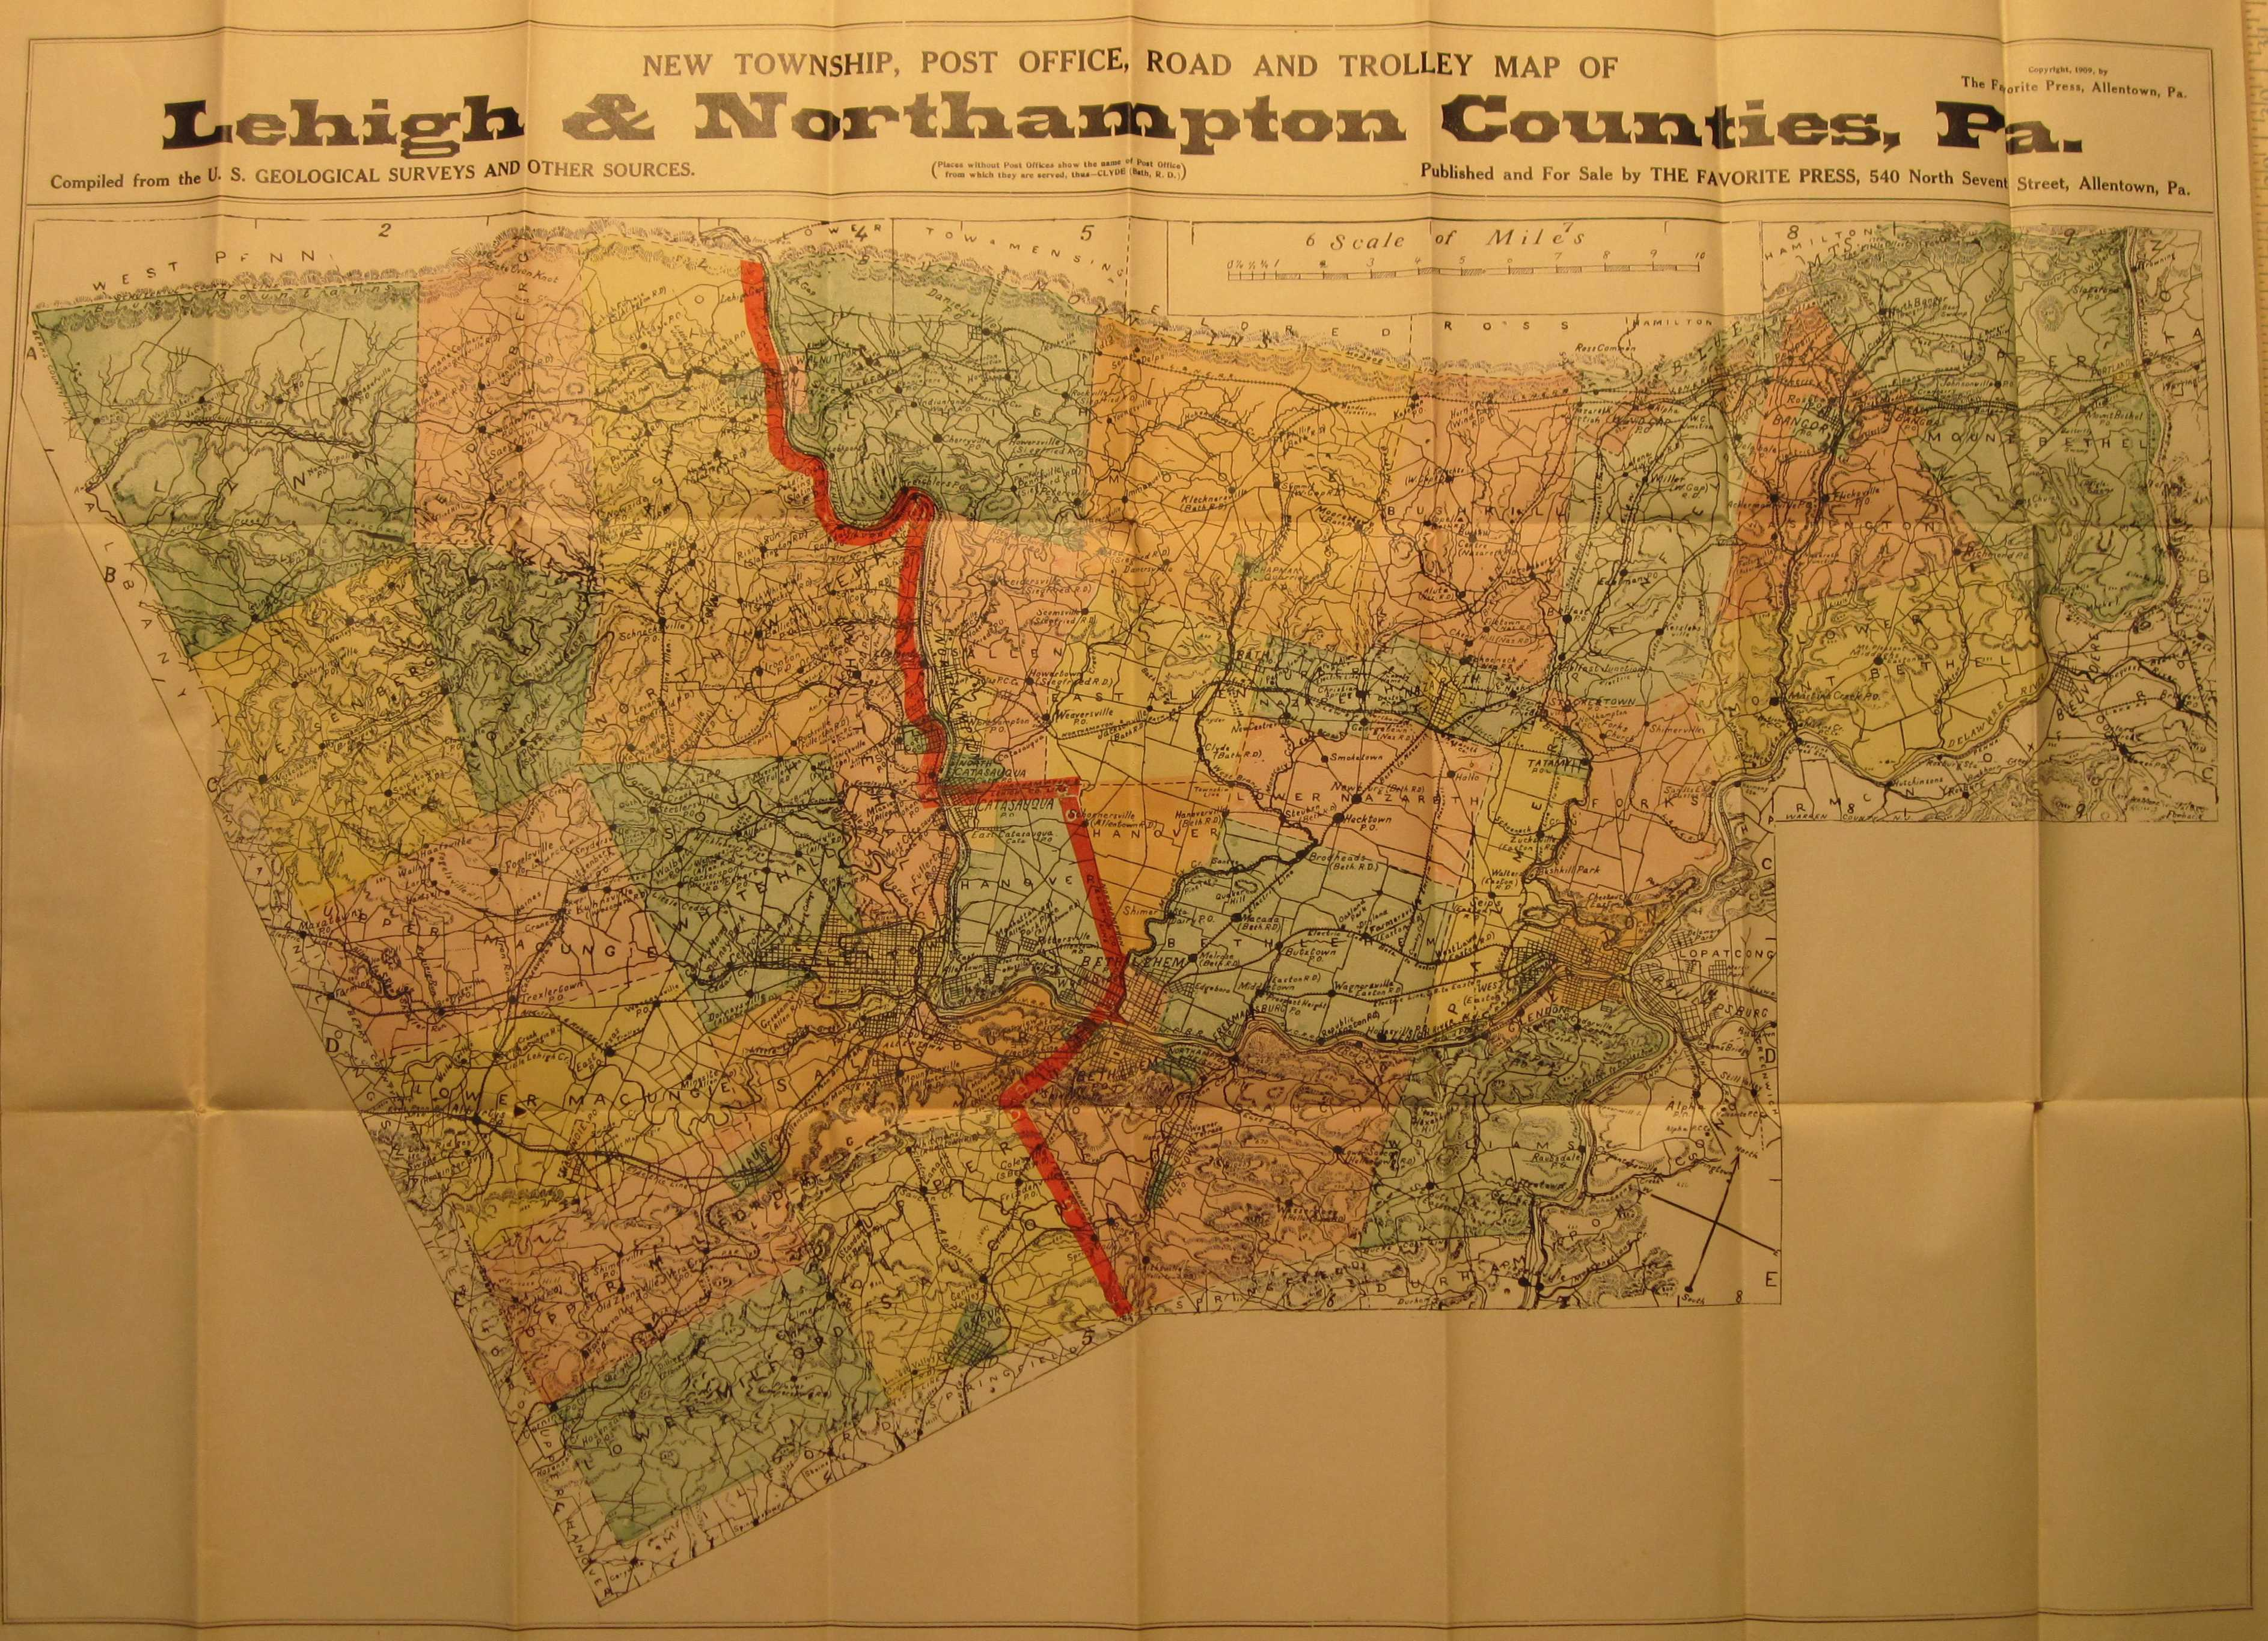 Pennsylvania in early pocket maps 1909 new township post office road and trolley map of lehigh northampton counties copyright 1909 by the favorite press allentown pa publicscrutiny Images